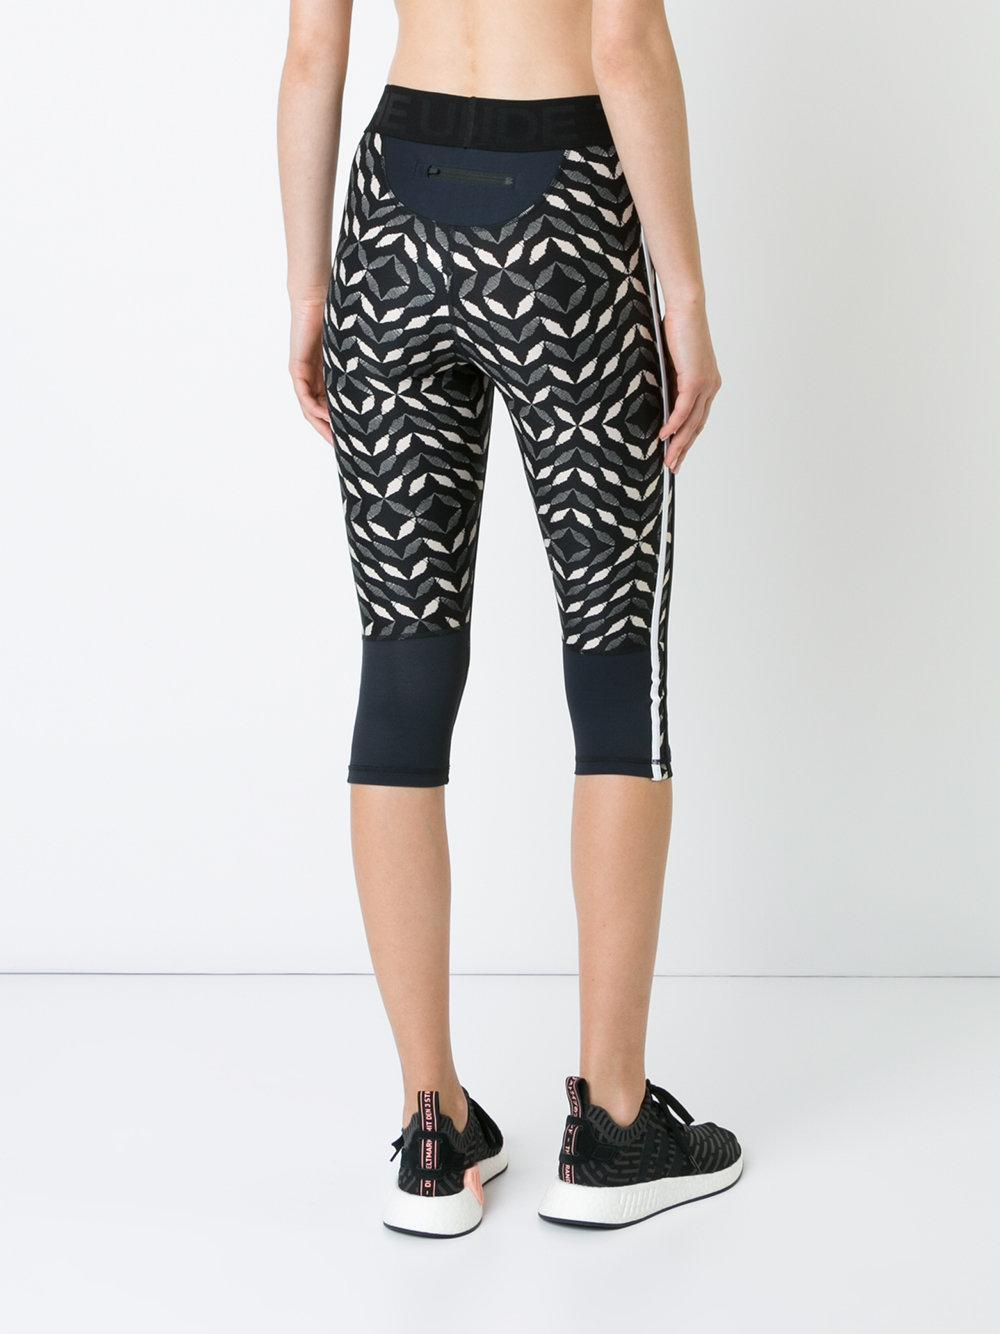 The Upside Synthetic Phoenix Compression Power Leggings in Black